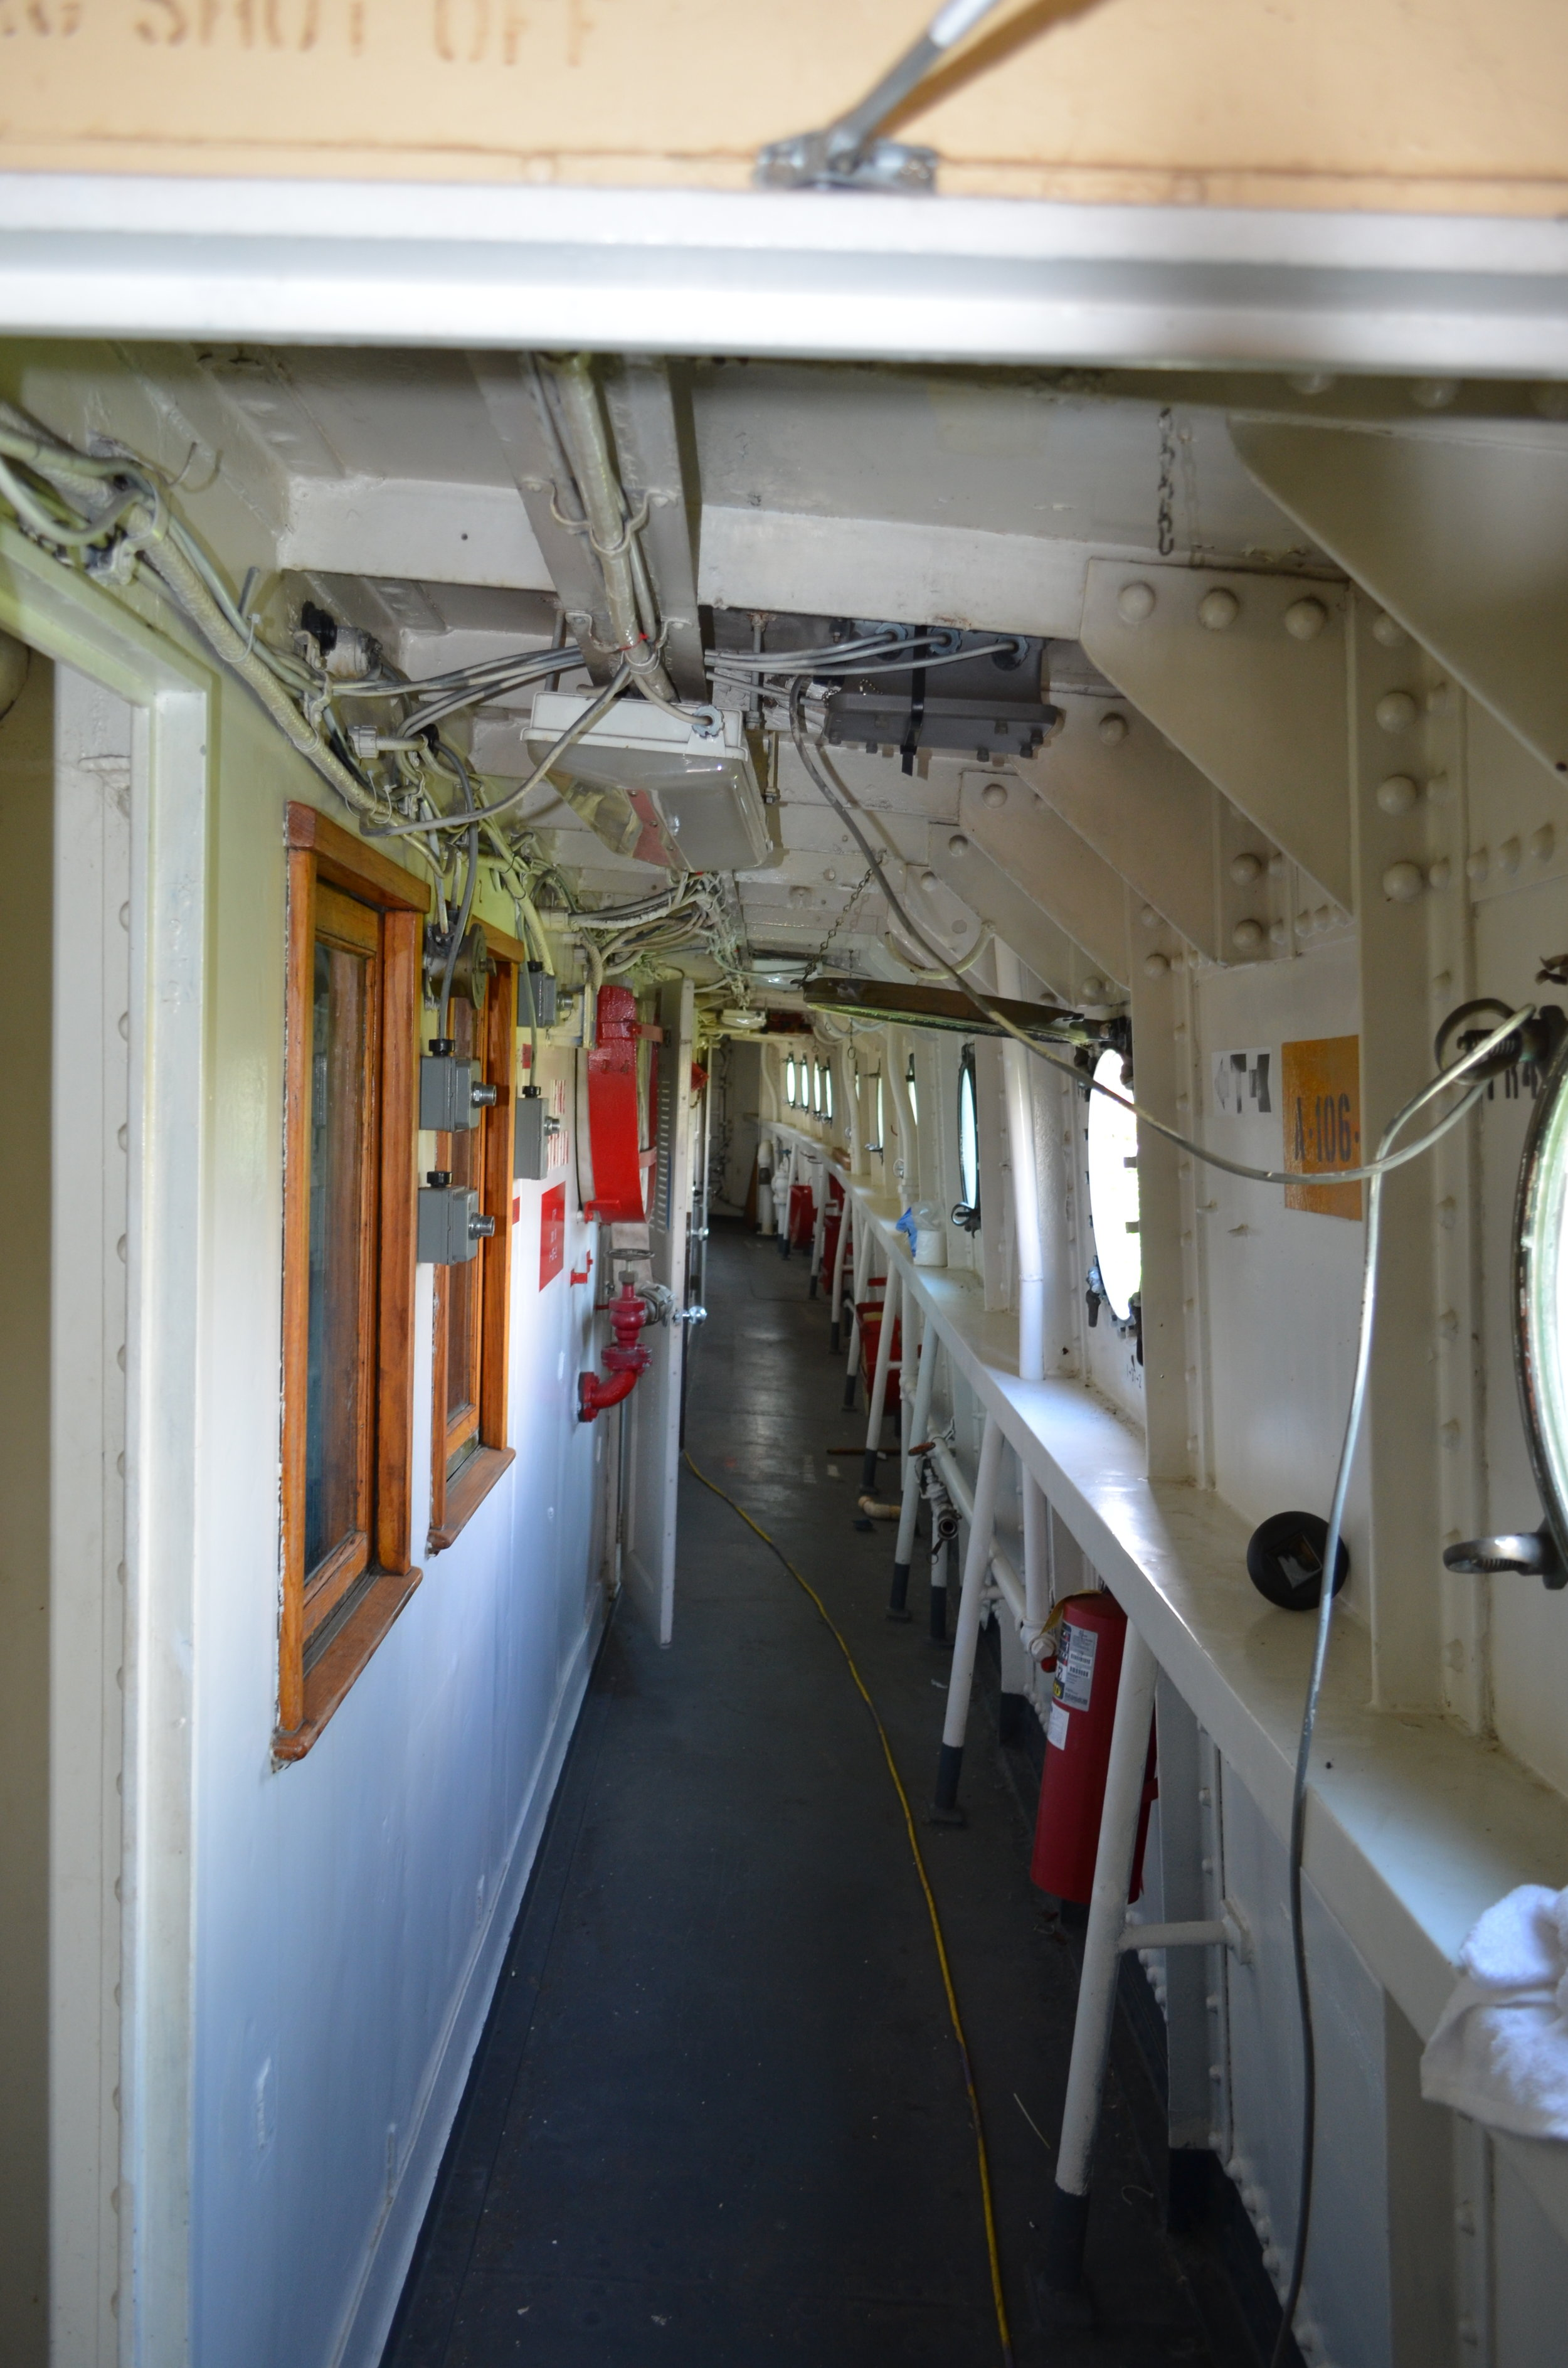 Port passage on the 01 deck looking aft. Summer 2017. Tracing wires in the ceiling